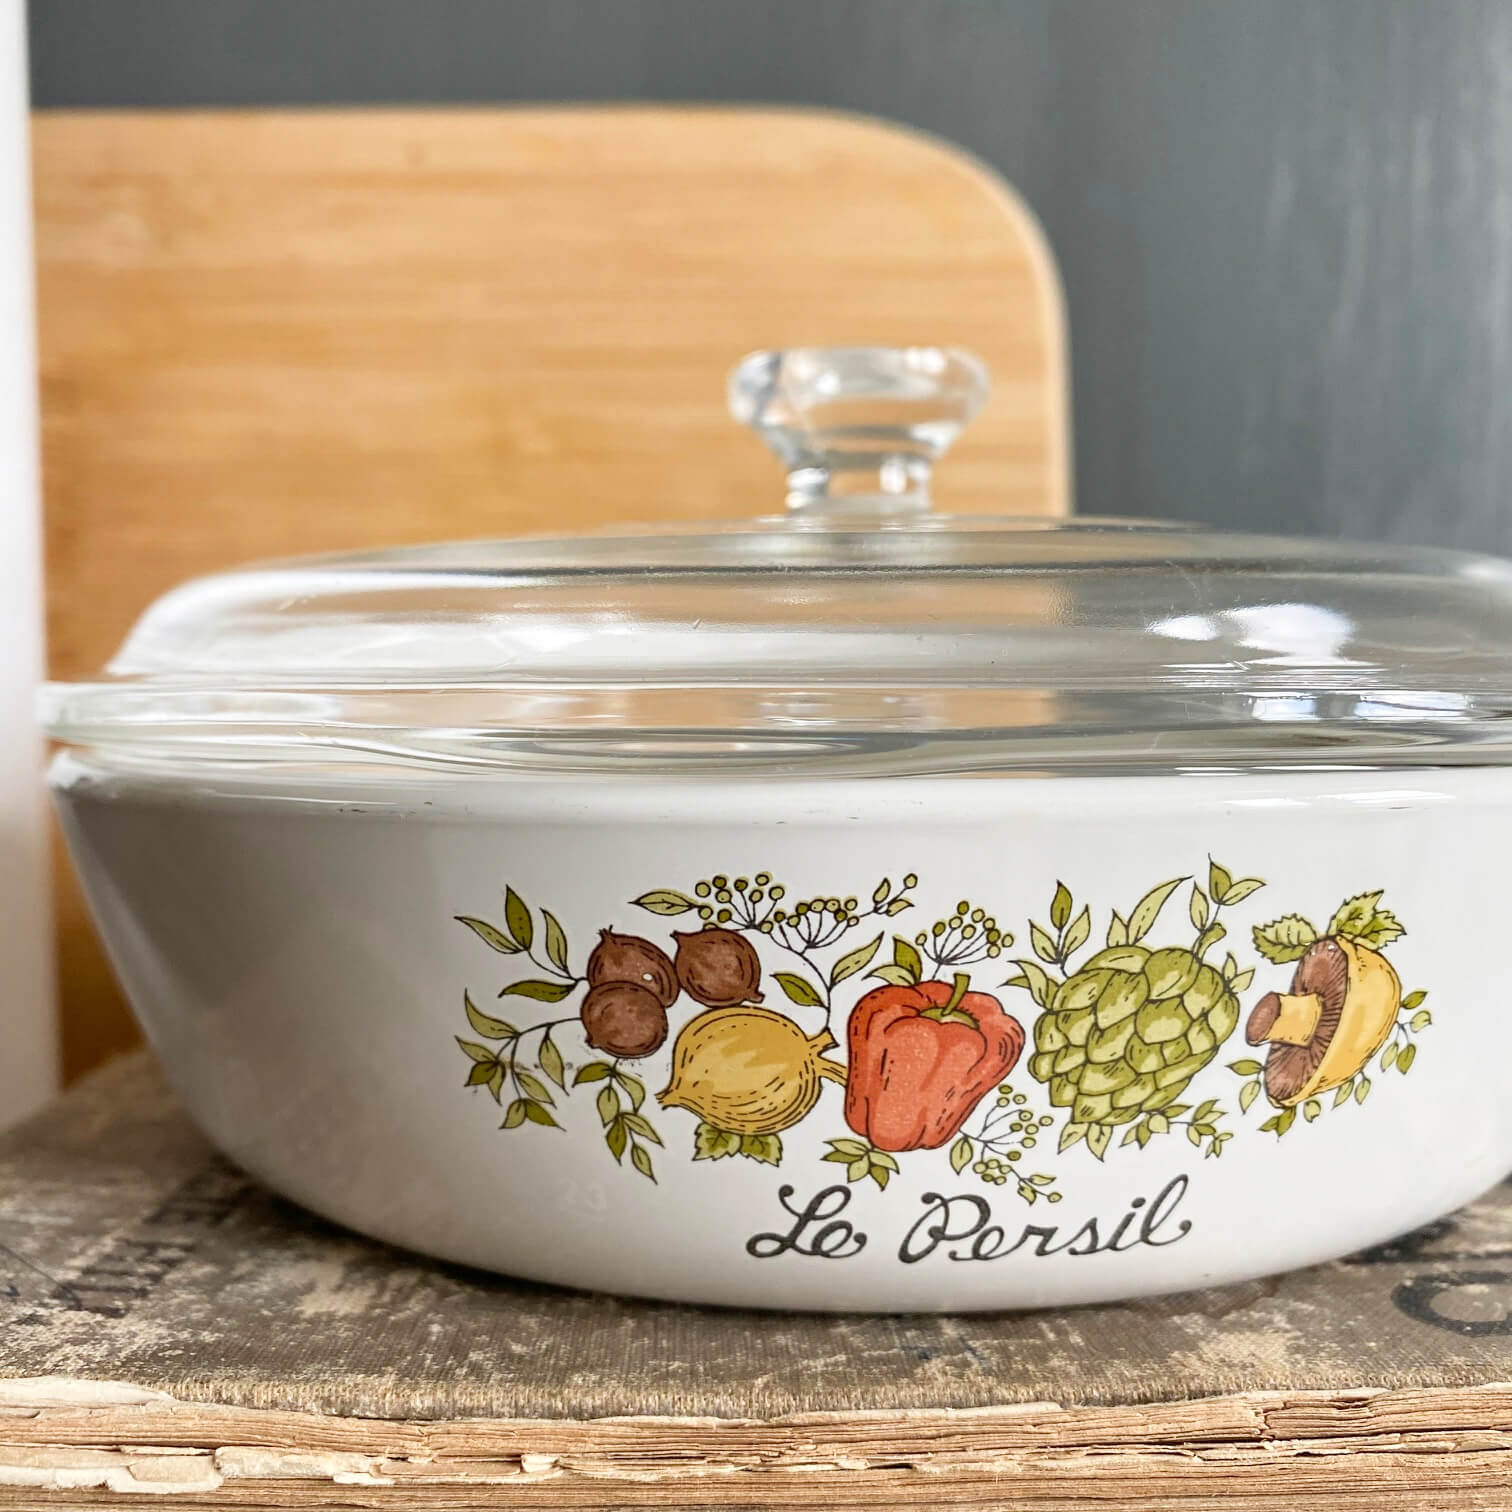 Vintage Corning Ware Spice of Life Covered Dish - 6 and 1/2 inch Skillet - Le Persil - P-83-B